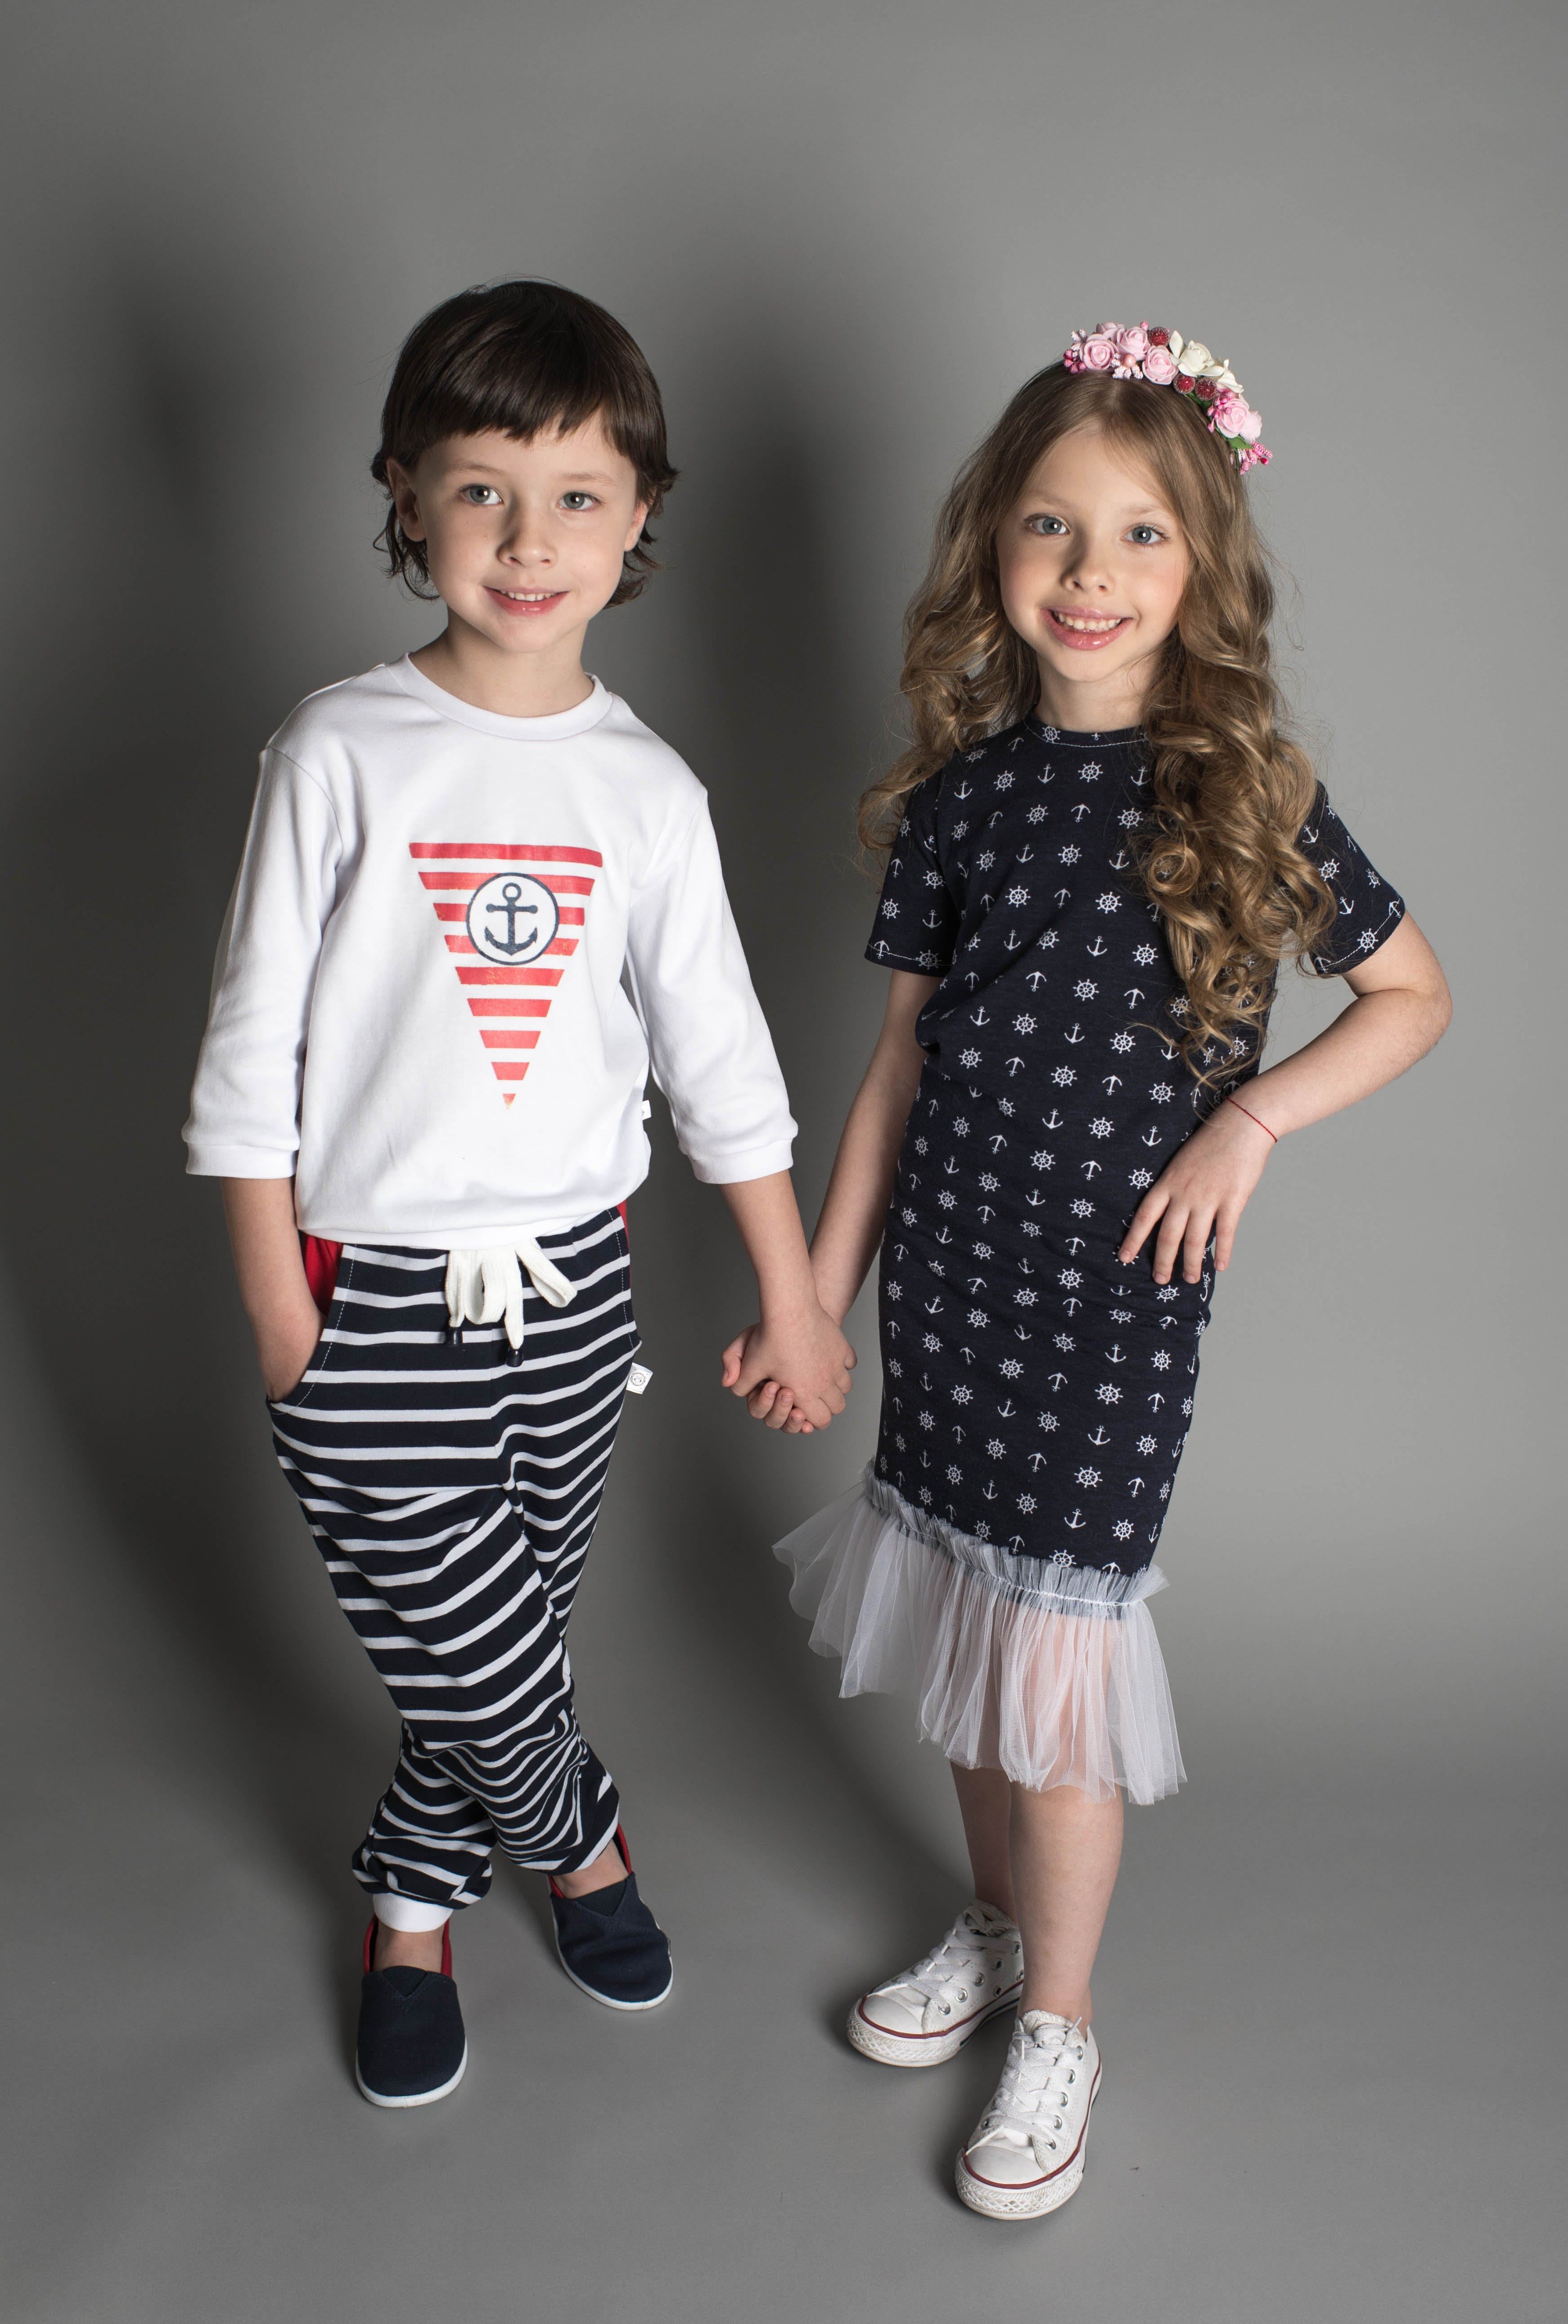 Boy and Girl Taking Photo While Holding Hands